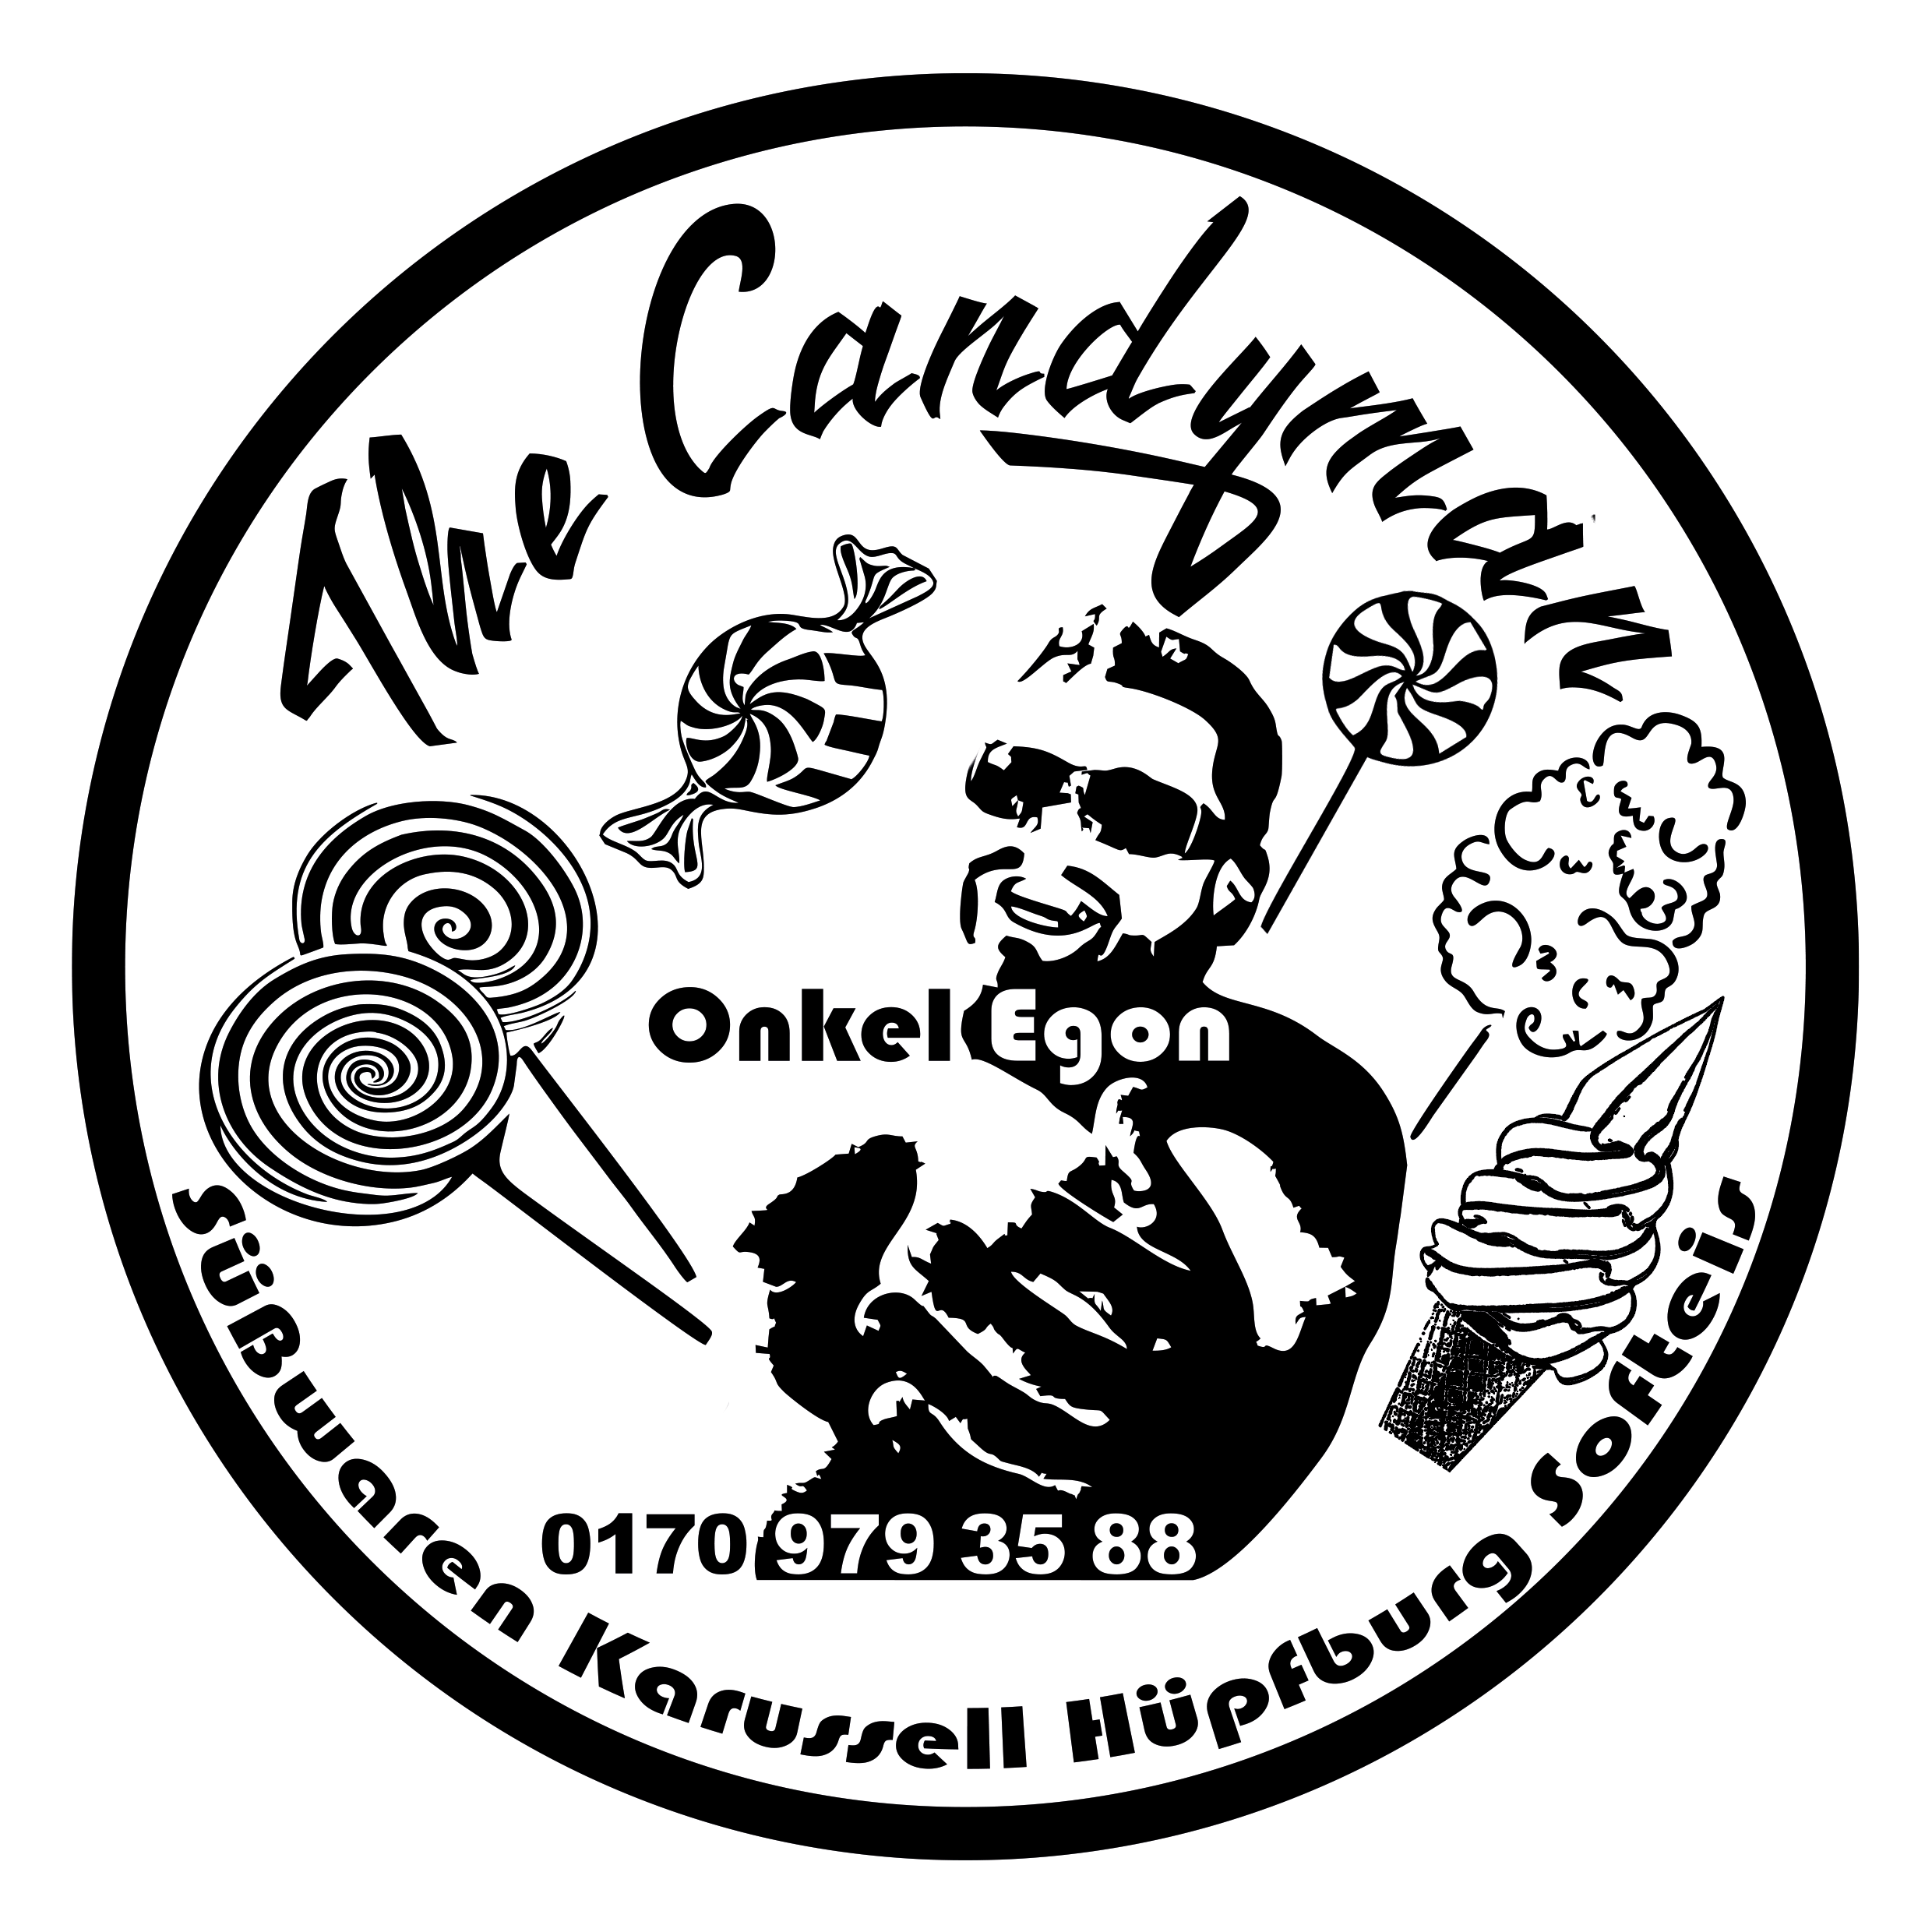 The Candyman OnkelEgon